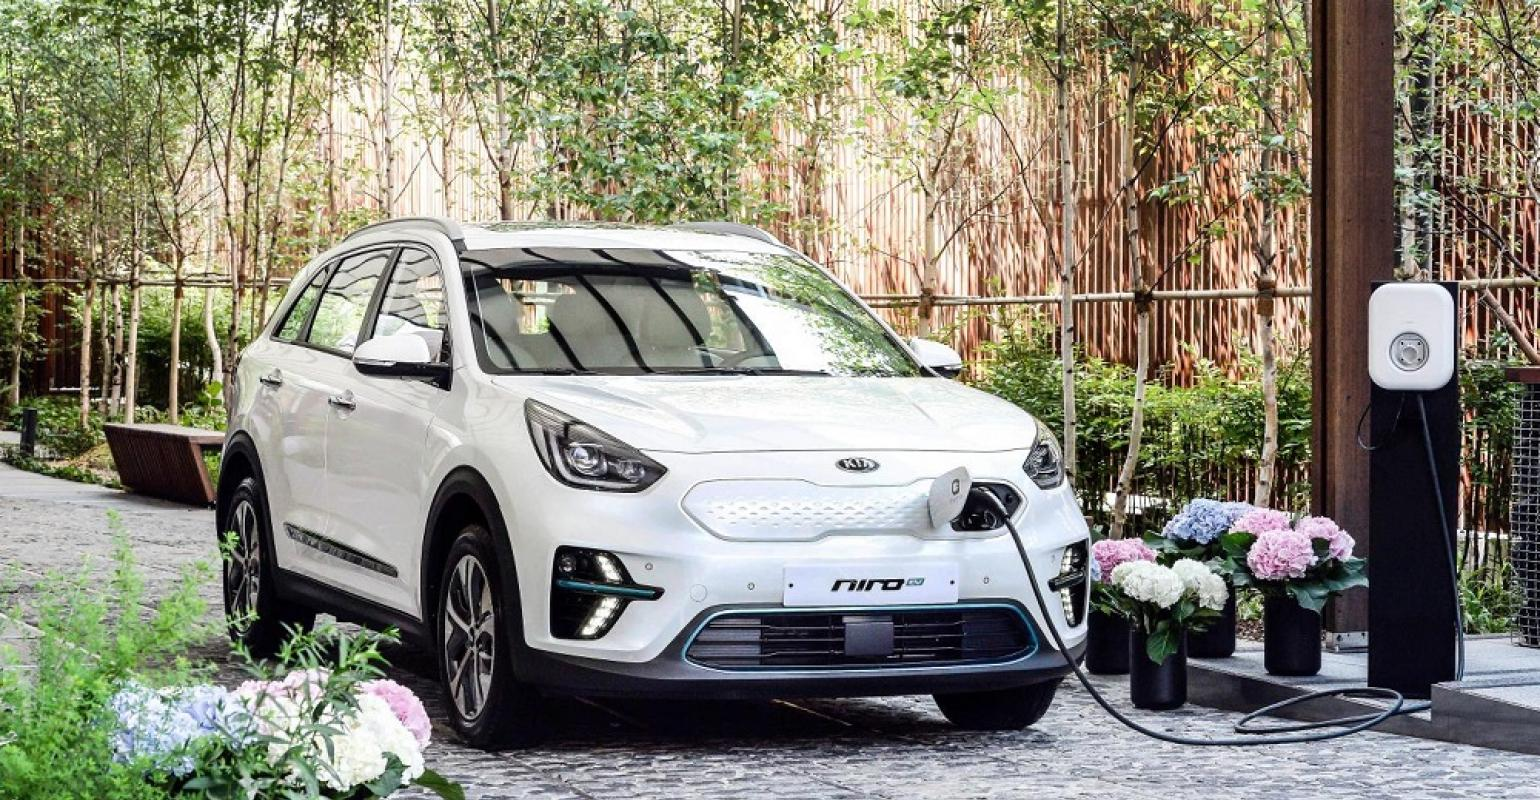 Kia Launches South Korean Sales Of All Electric Niro Cuv Wardsauto Ev Range Extending Adding A 2nd Hv Battery Claims Class Leading 280 Mile For